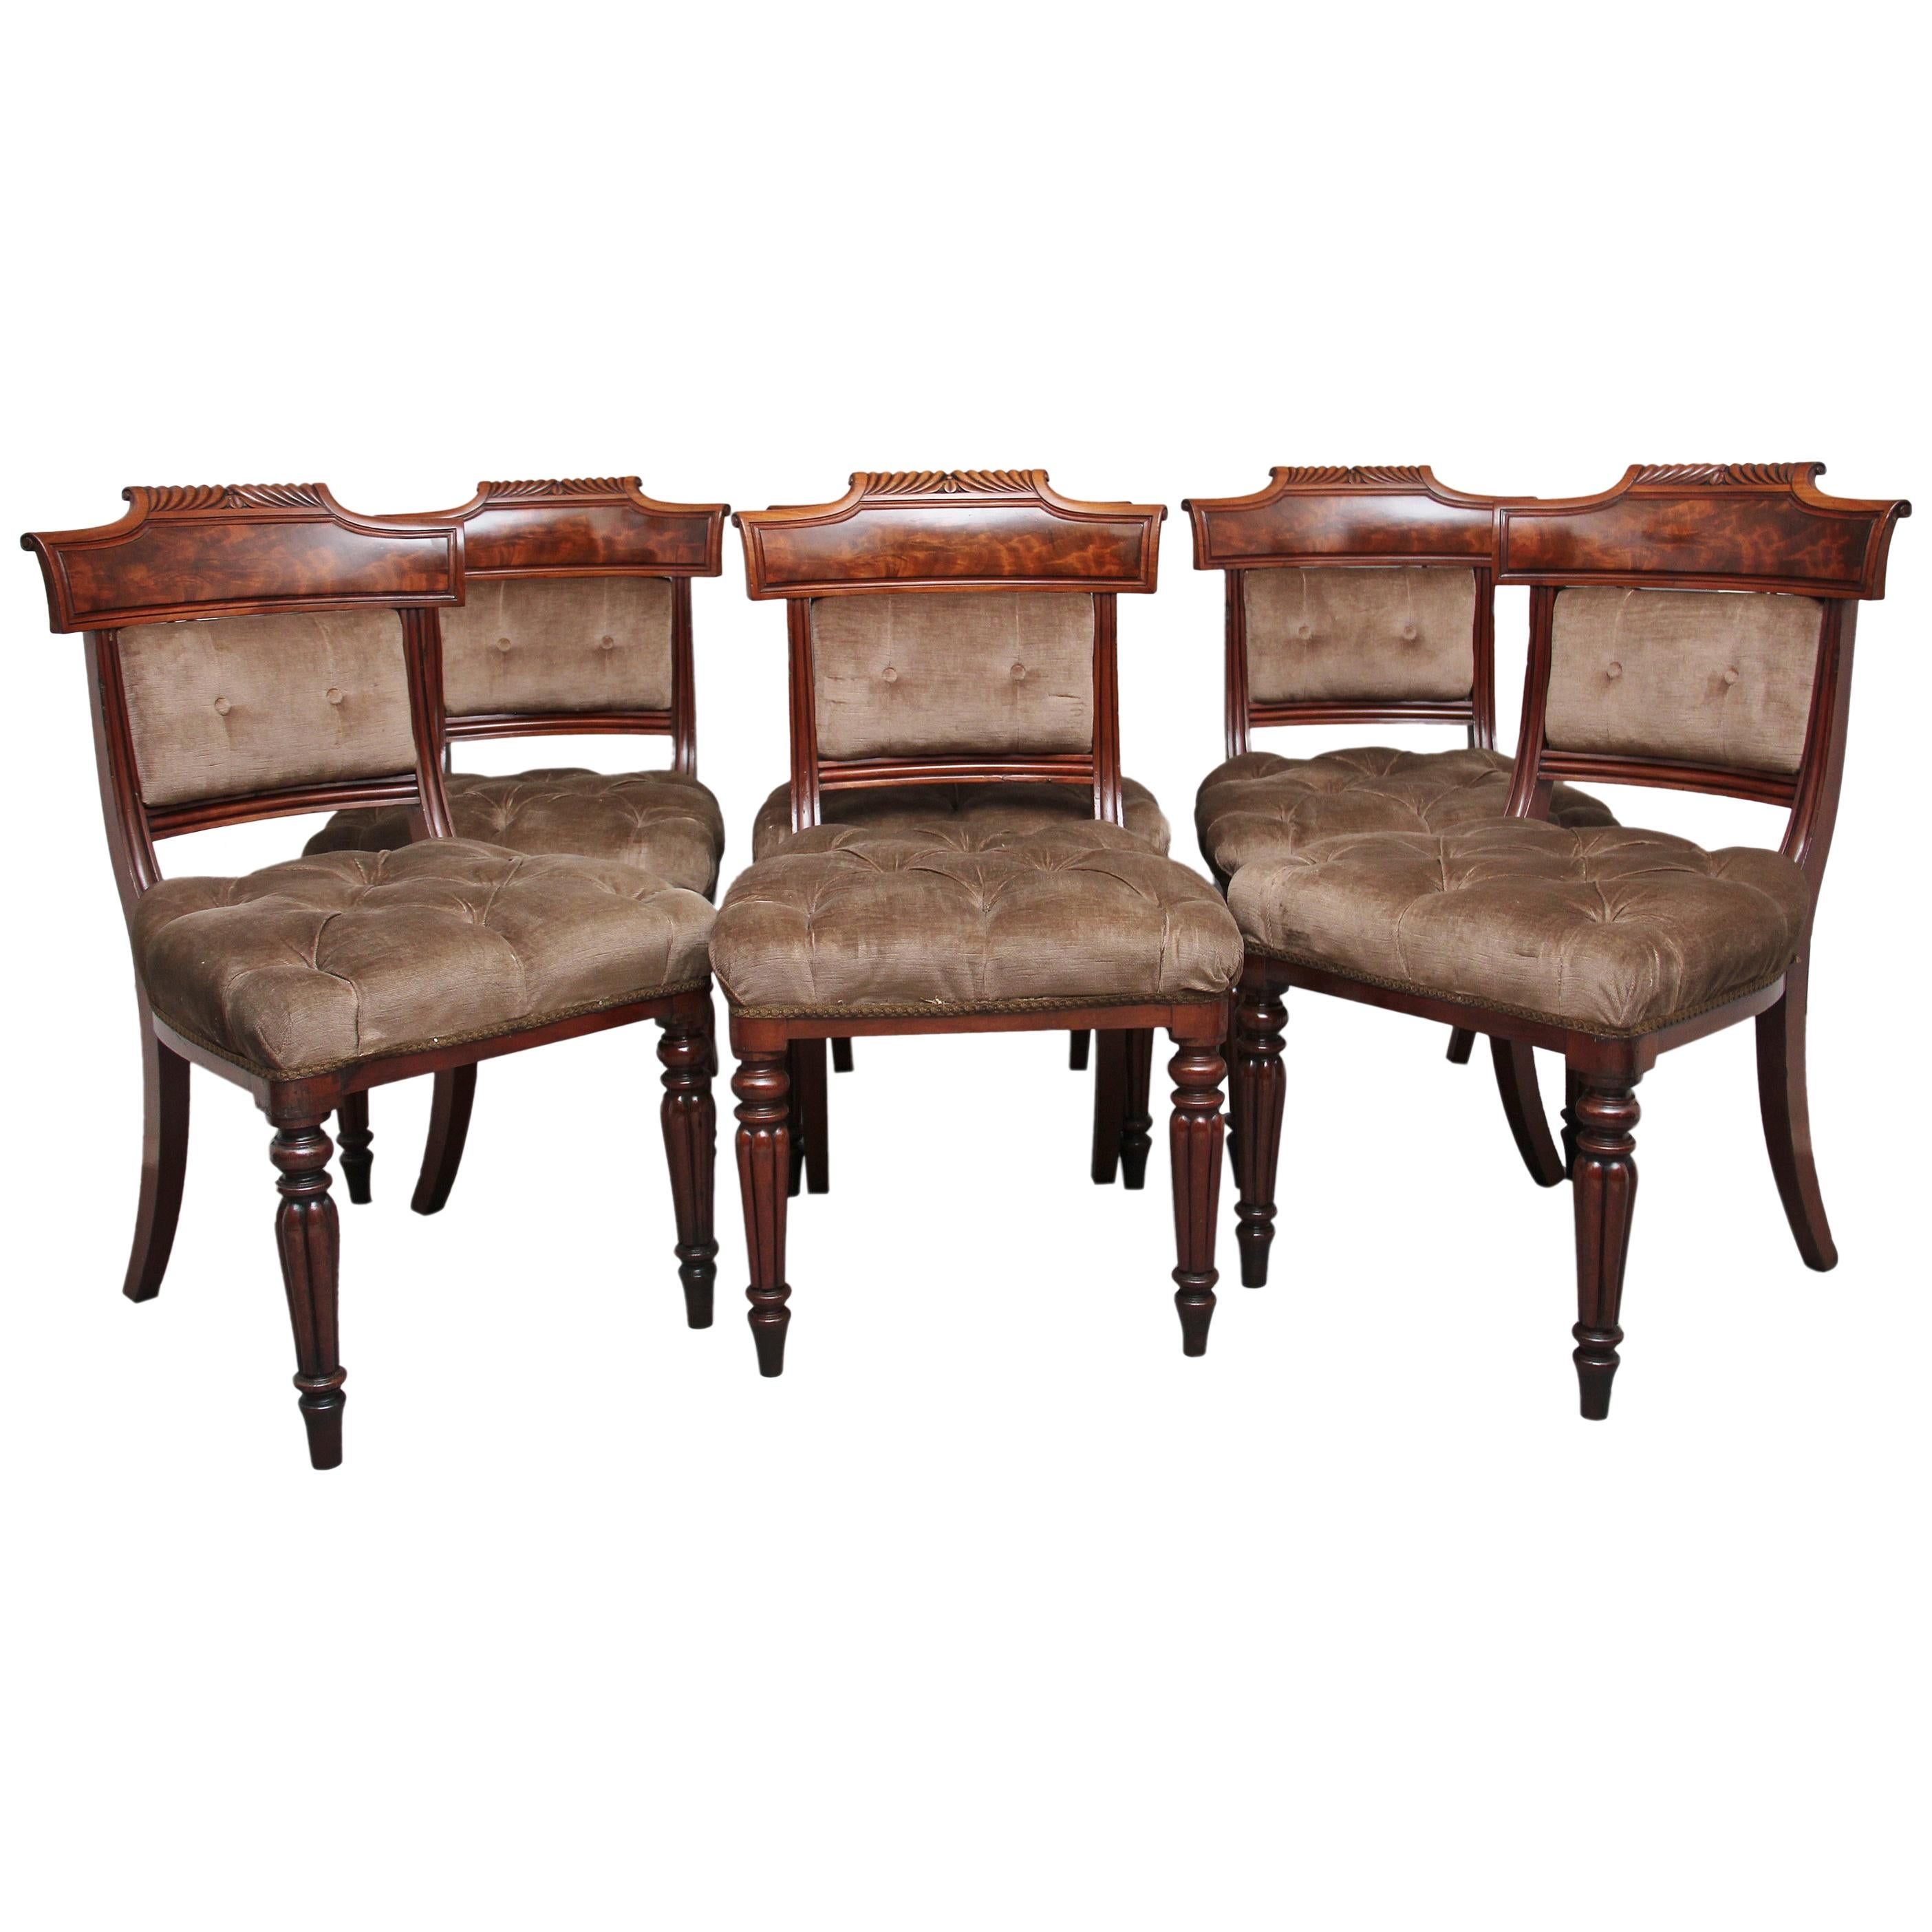 Set of Six 19th Century Mahogany Dining Chairs